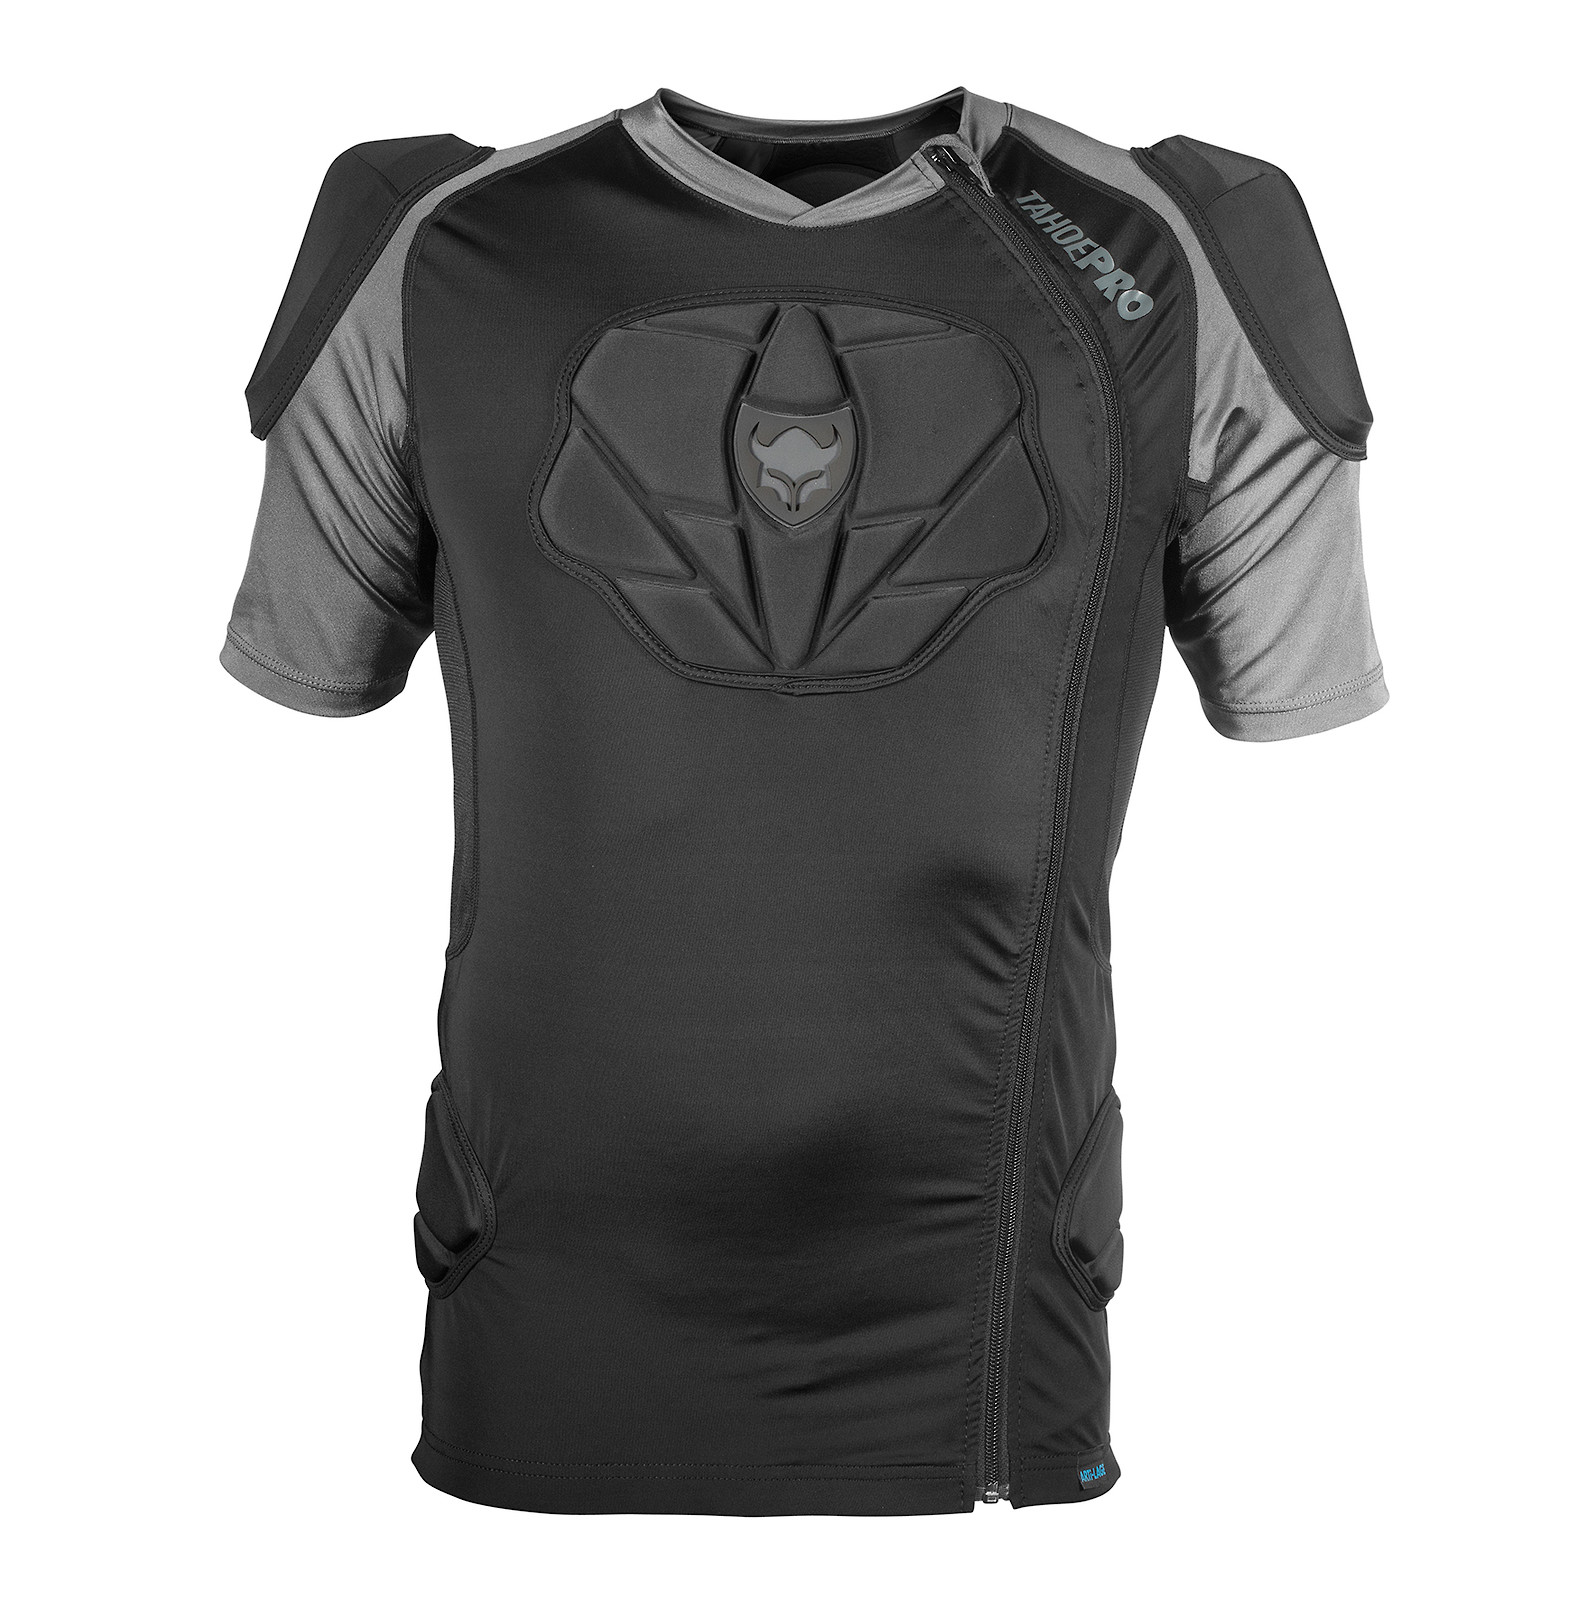 TSG Tahoe Pro A S/S Protective Shirt